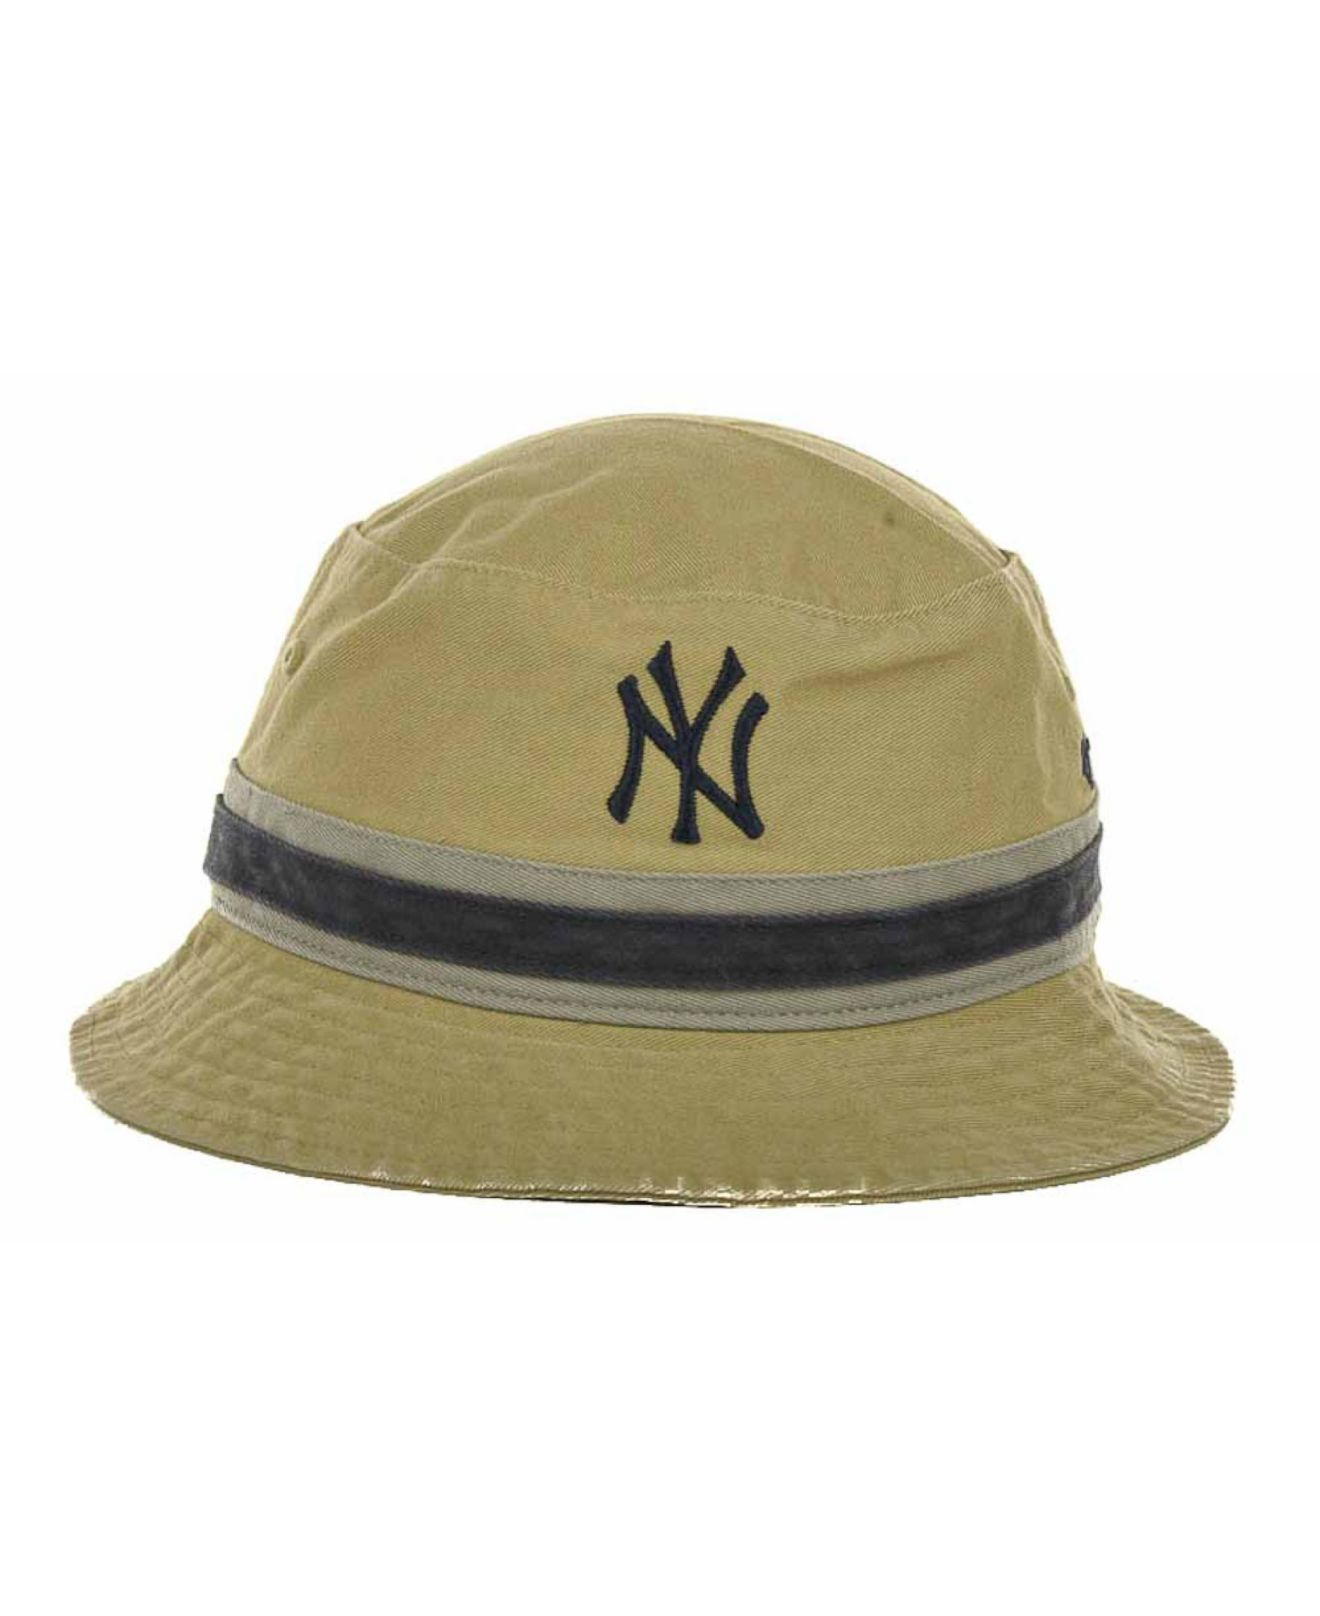 d8931cfb305ac 47 Brand New York Yankees Striped Bucket Hat in Natural - Lyst